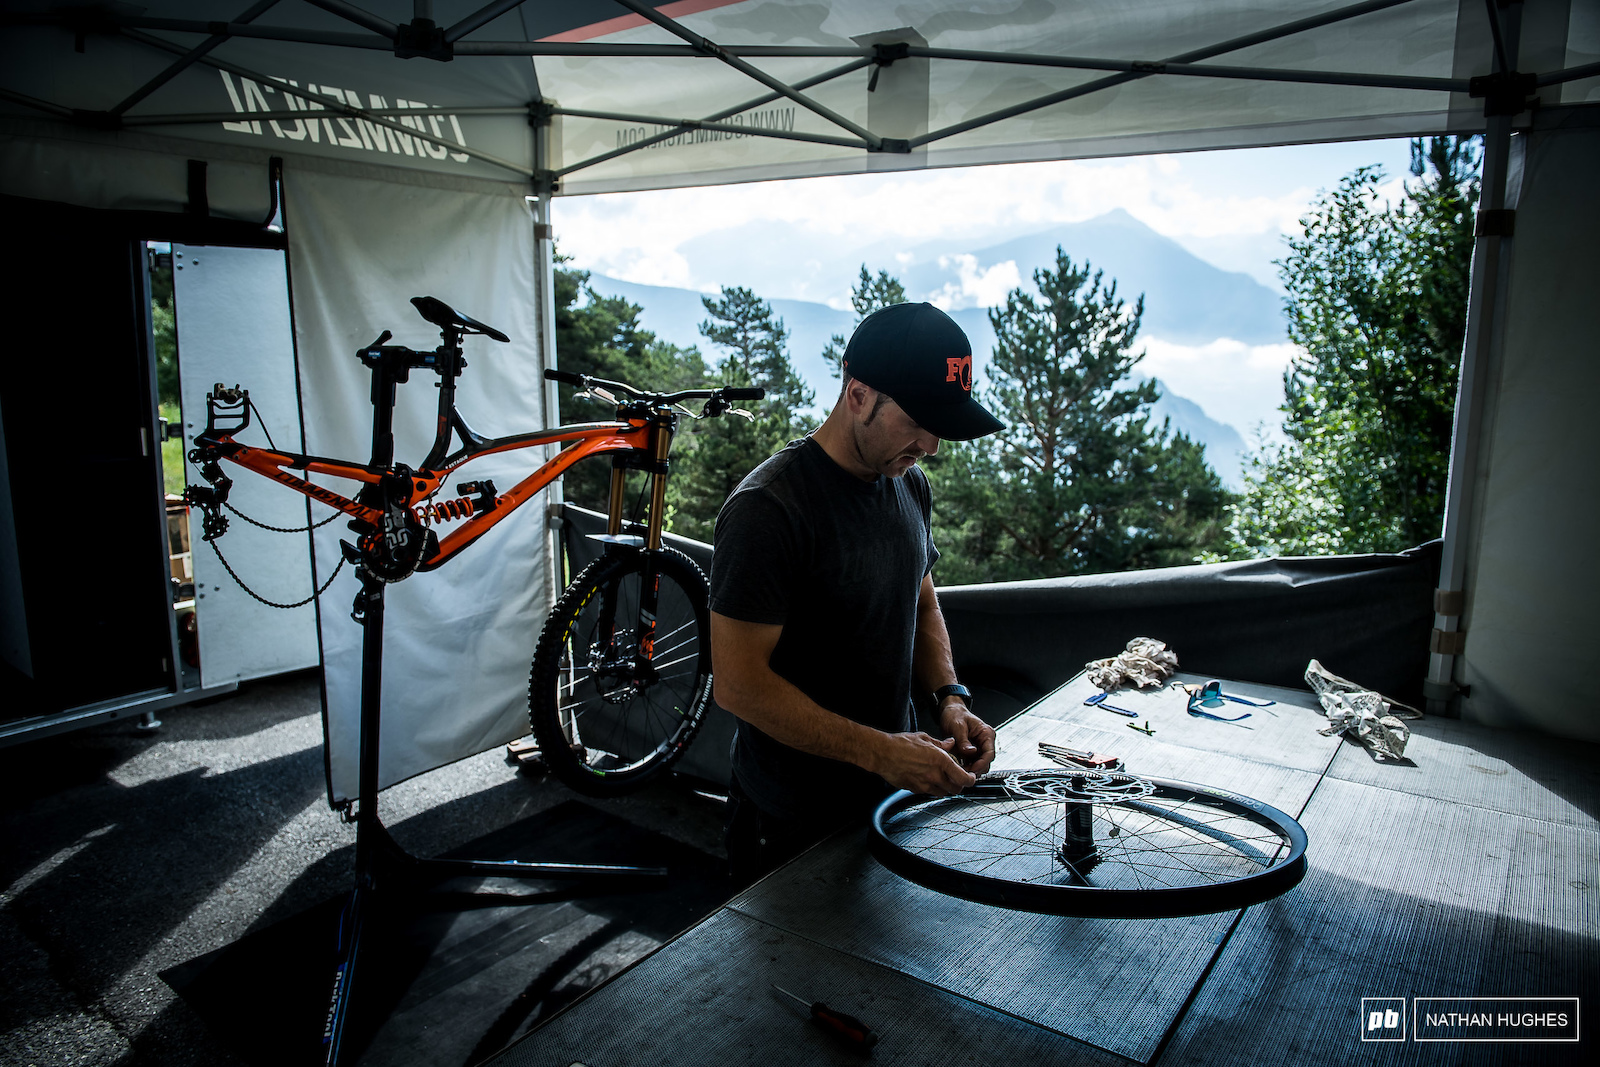 Fresh podium-ite Thomas Estaque s bike coming together at the Commencal 100 pit.